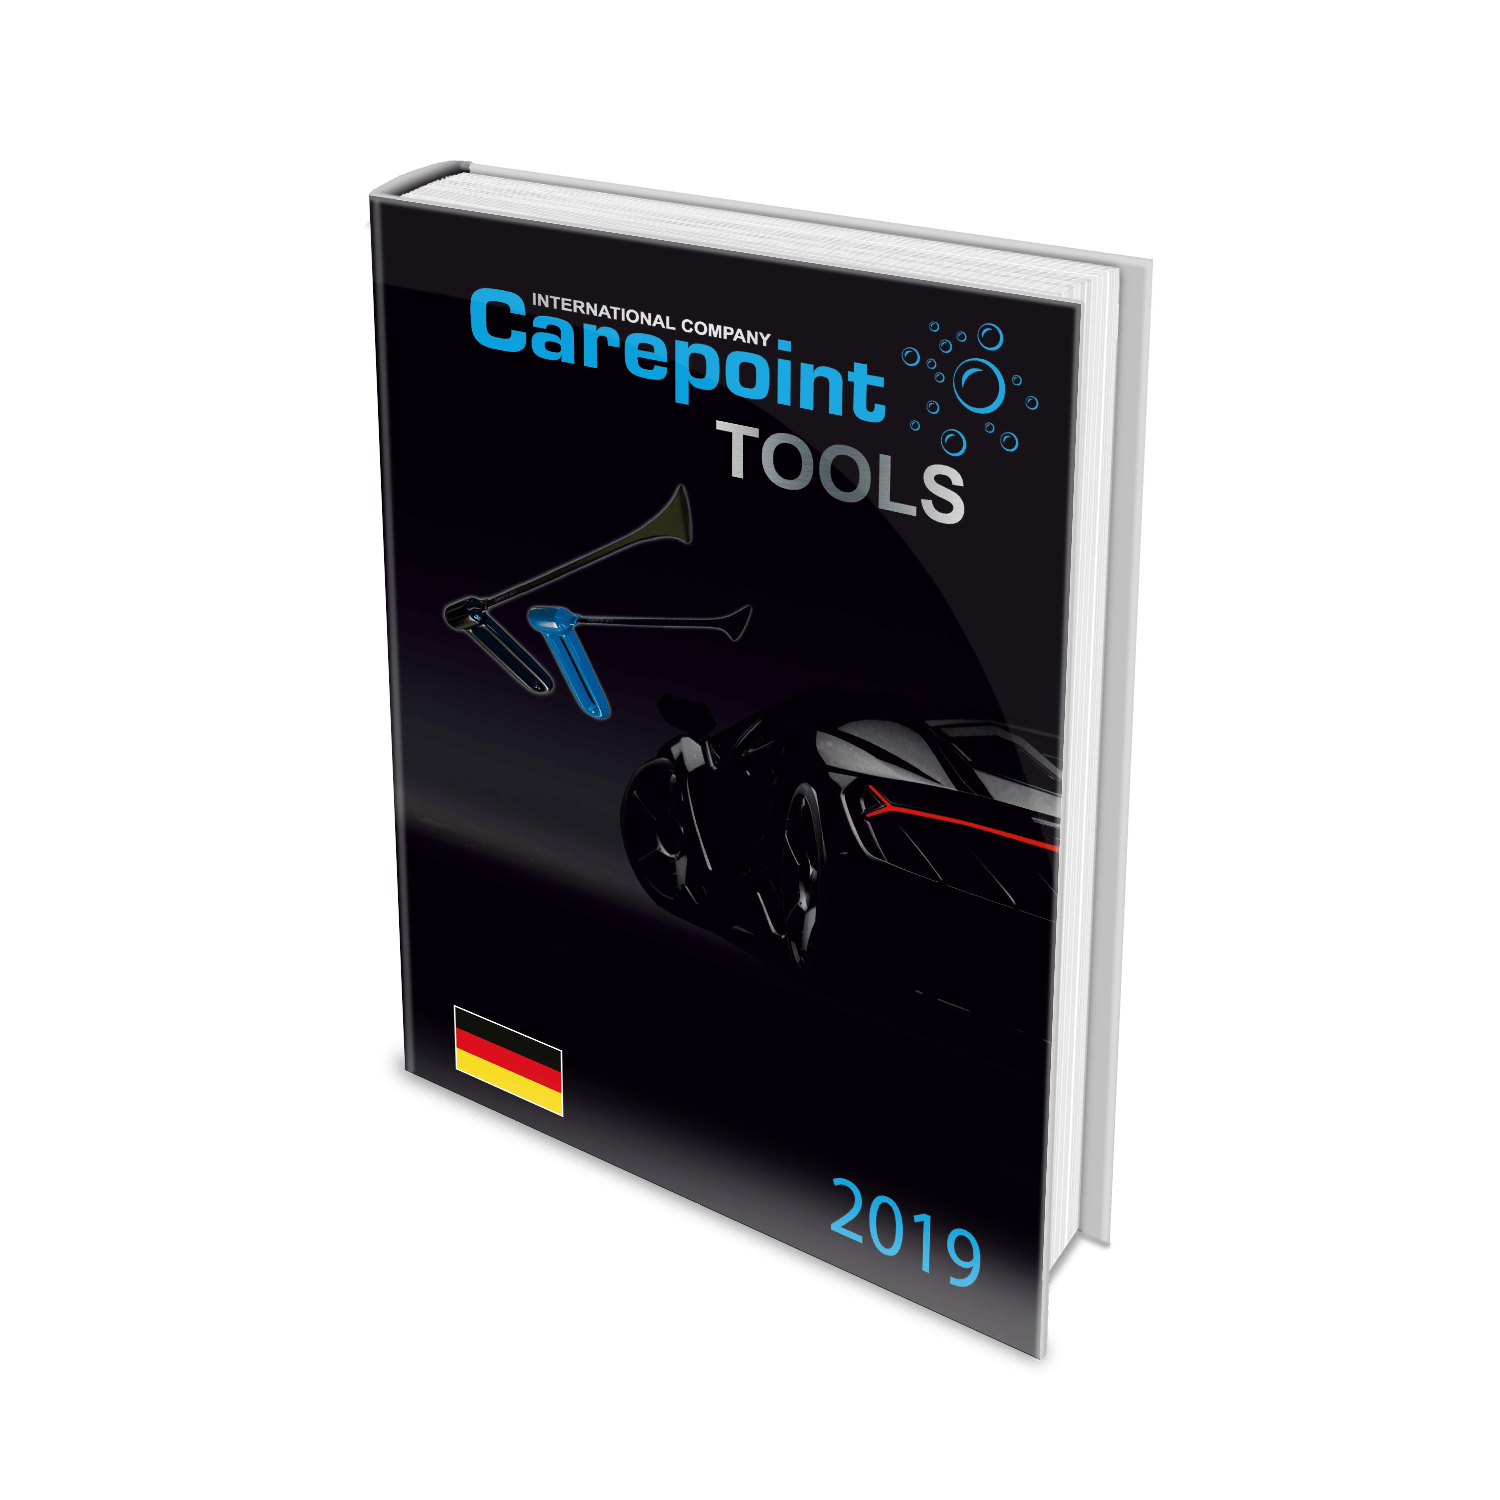 Download Carepoint catalogue